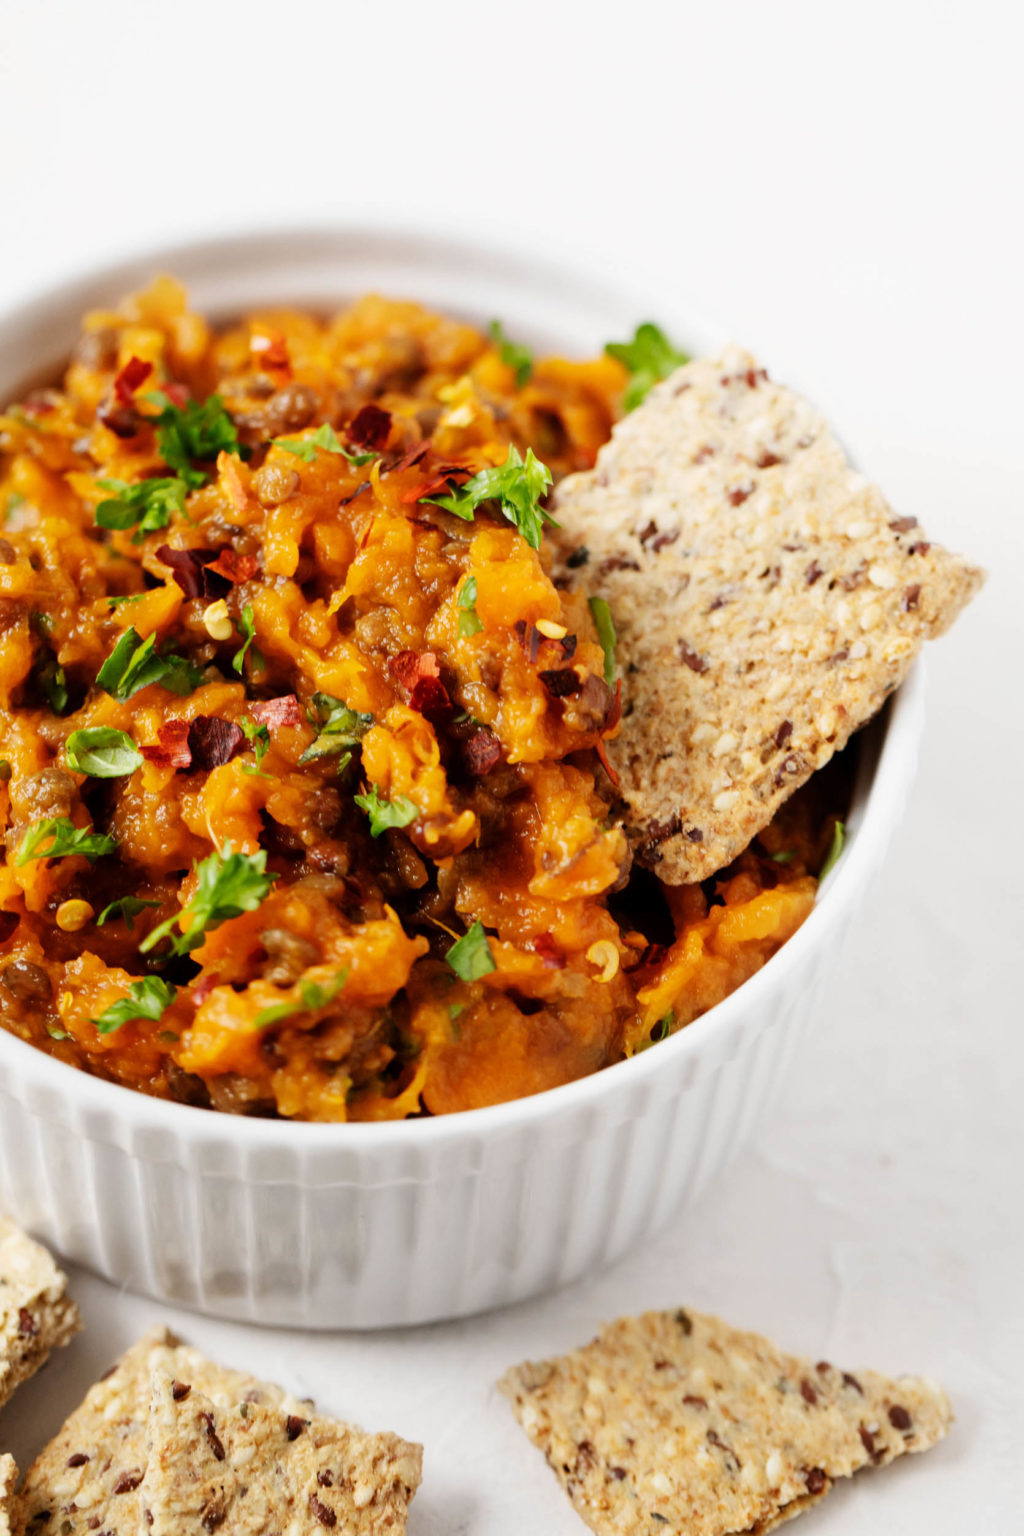 A white ramekin has been filled with a vegan spread made with sweet potatoes and lentils. A single, whole grain cracker is being dunked into the spread.